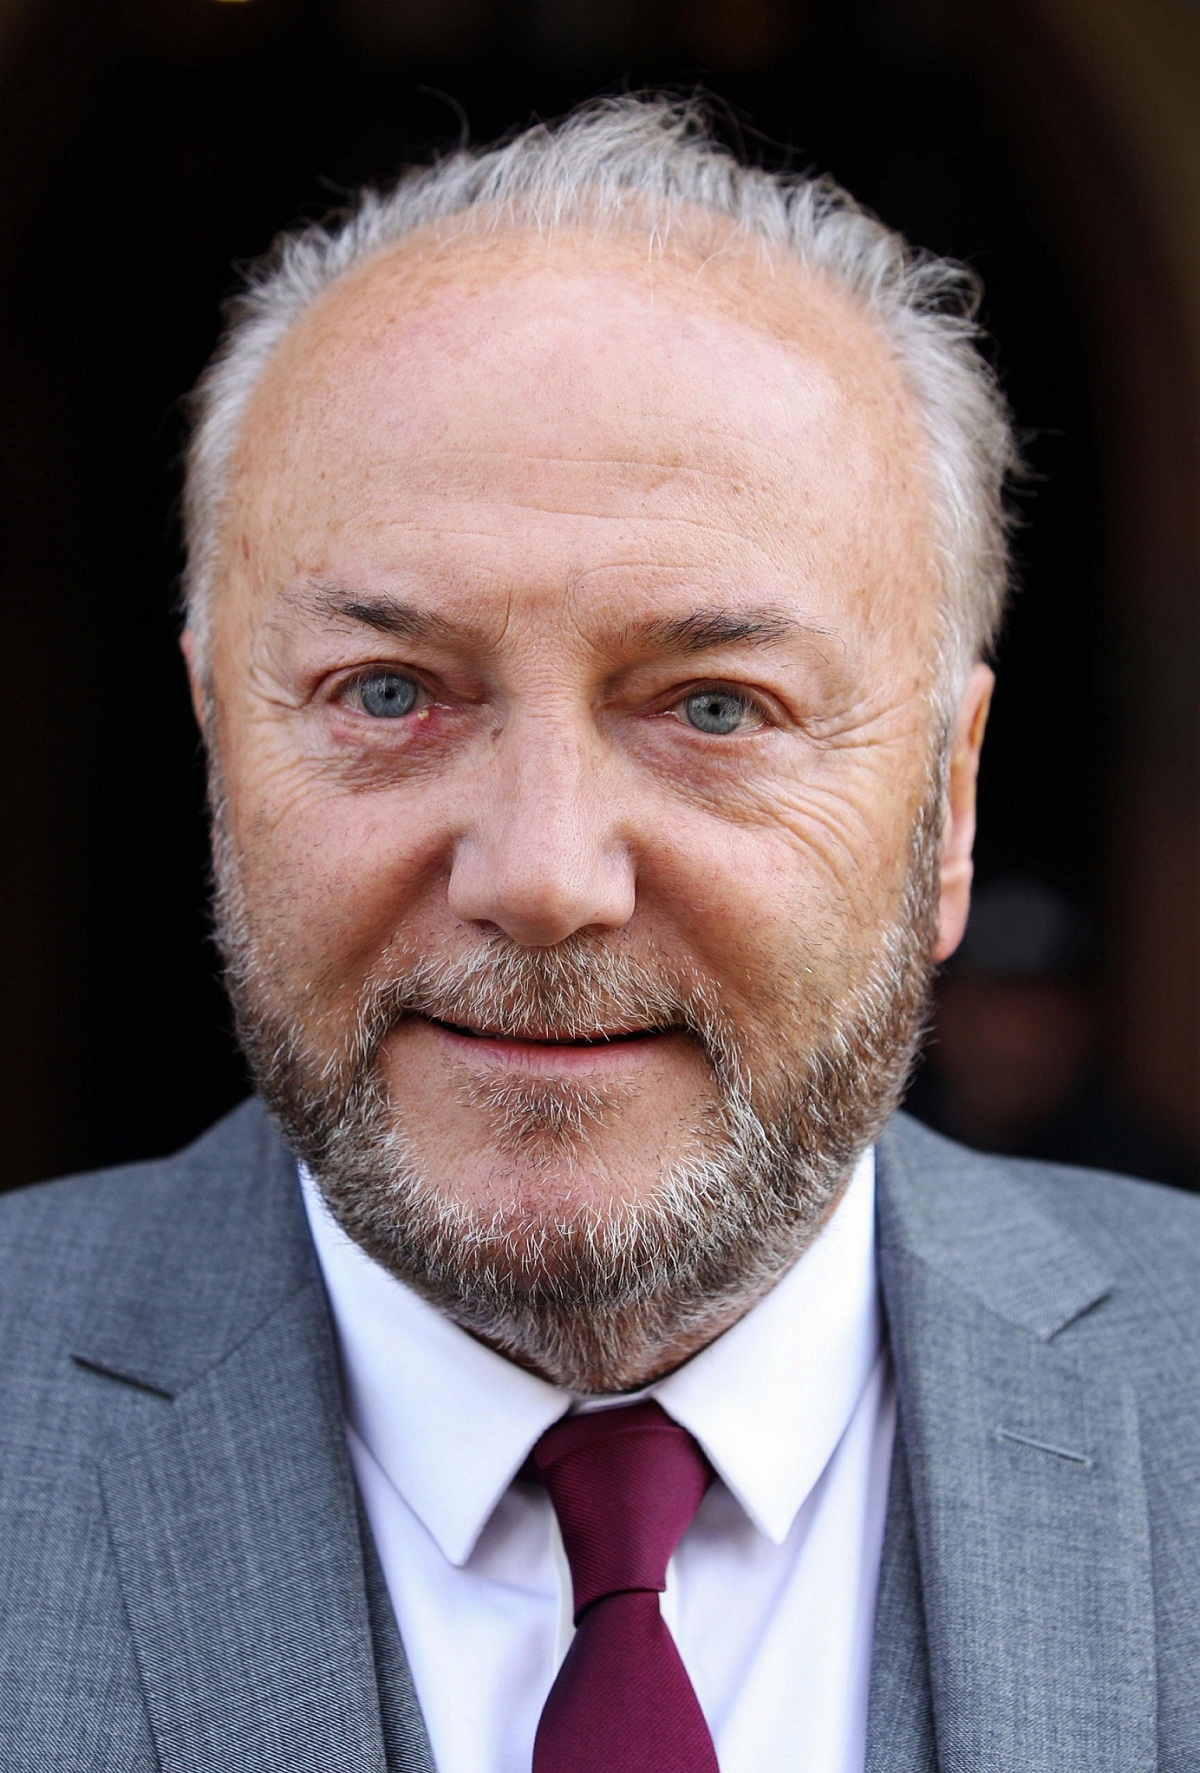 MP Galloway finds positives after meeting Bradford Royal Infirmary chiefs